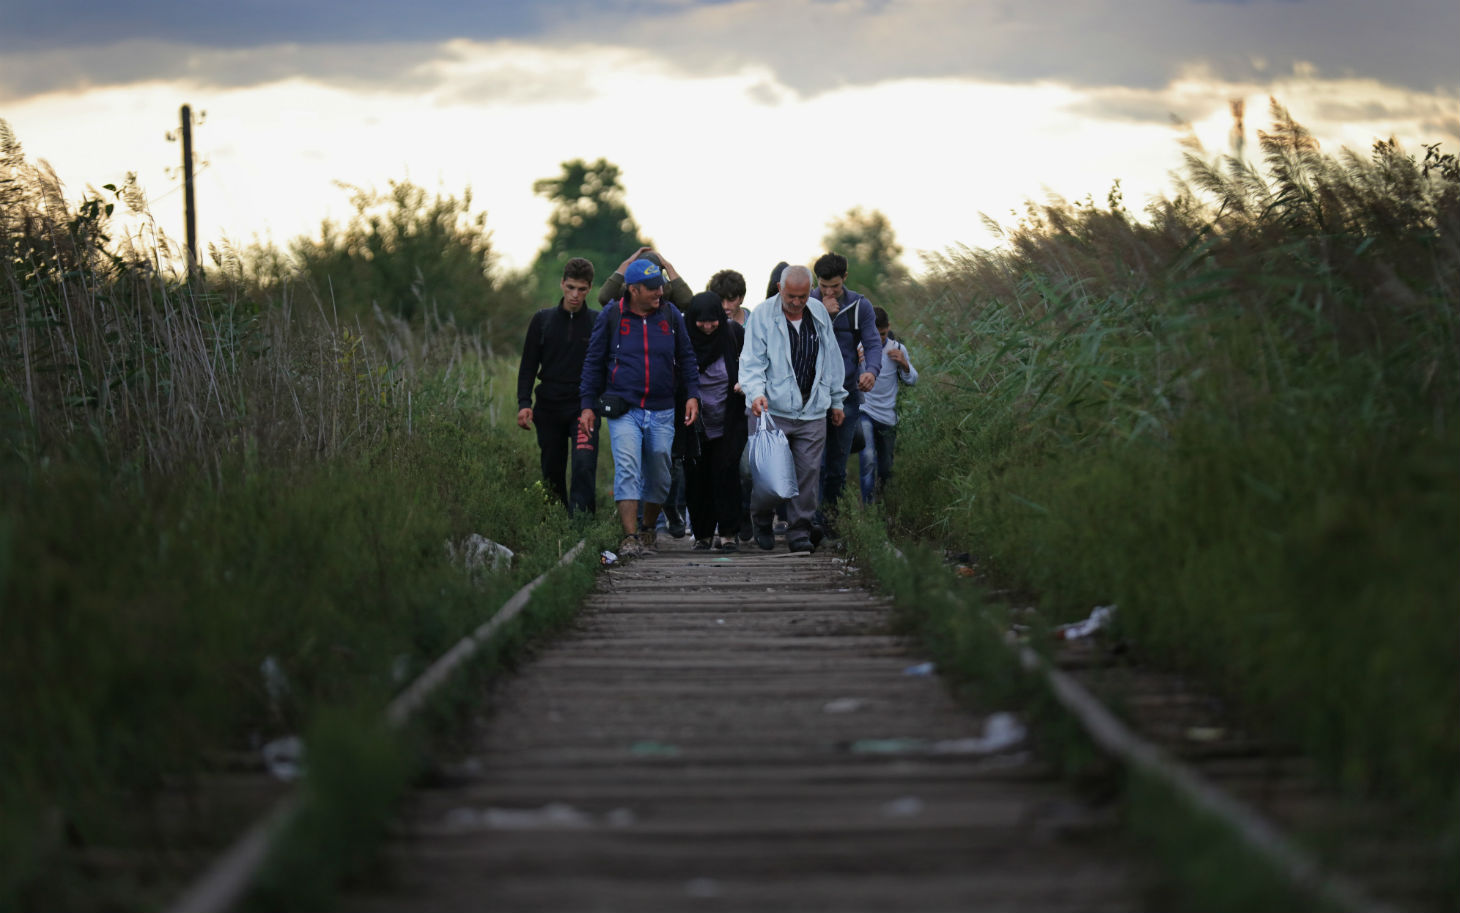 Refugee crisis may force EU to rethink, update open-borders policy